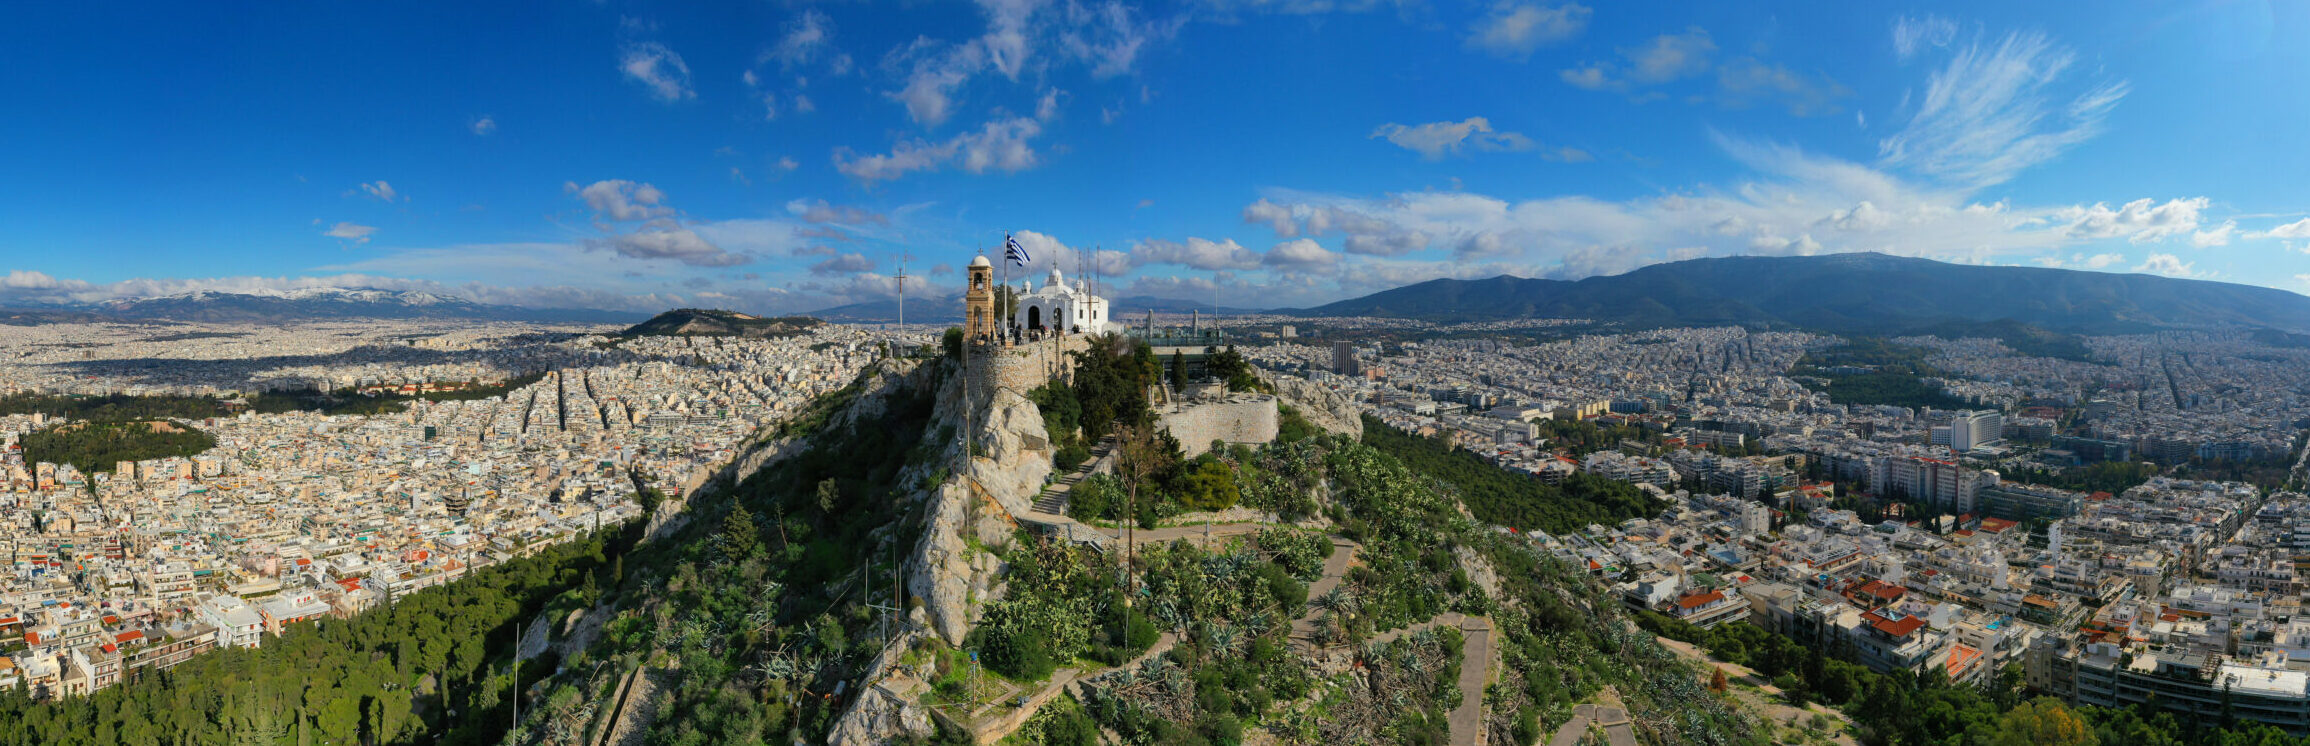 Lycabettus hill: Five things you may not know